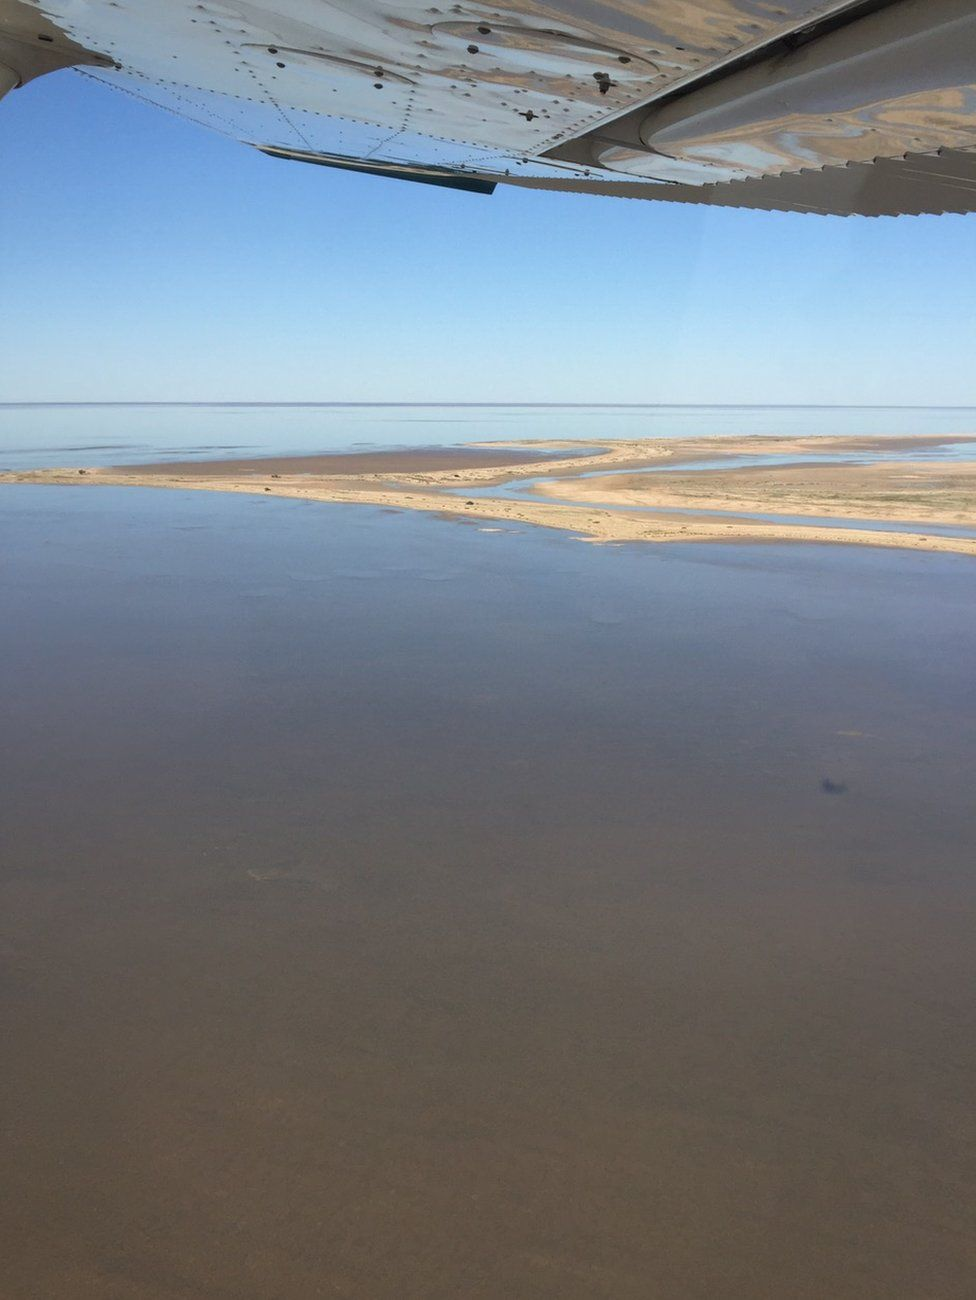 Sand banks peak above the water in Lake Eyre